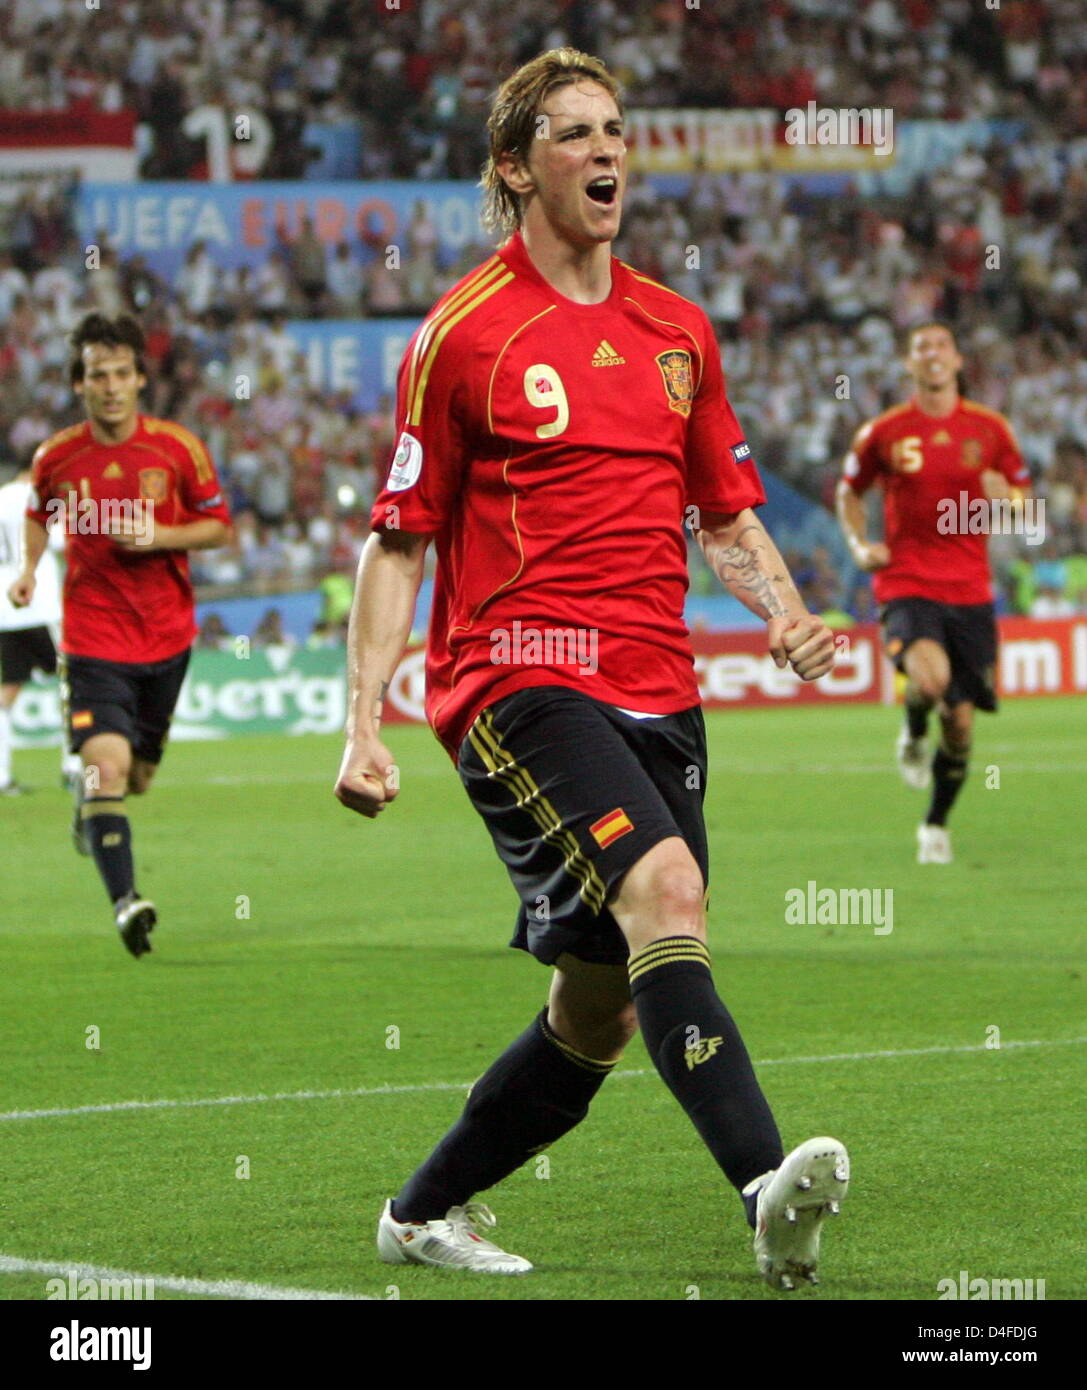 Fernando Torres of Spain celebrates after scoring the 1-0 lead during the UEFA EURO 2008 final match between Germany - Stock Image